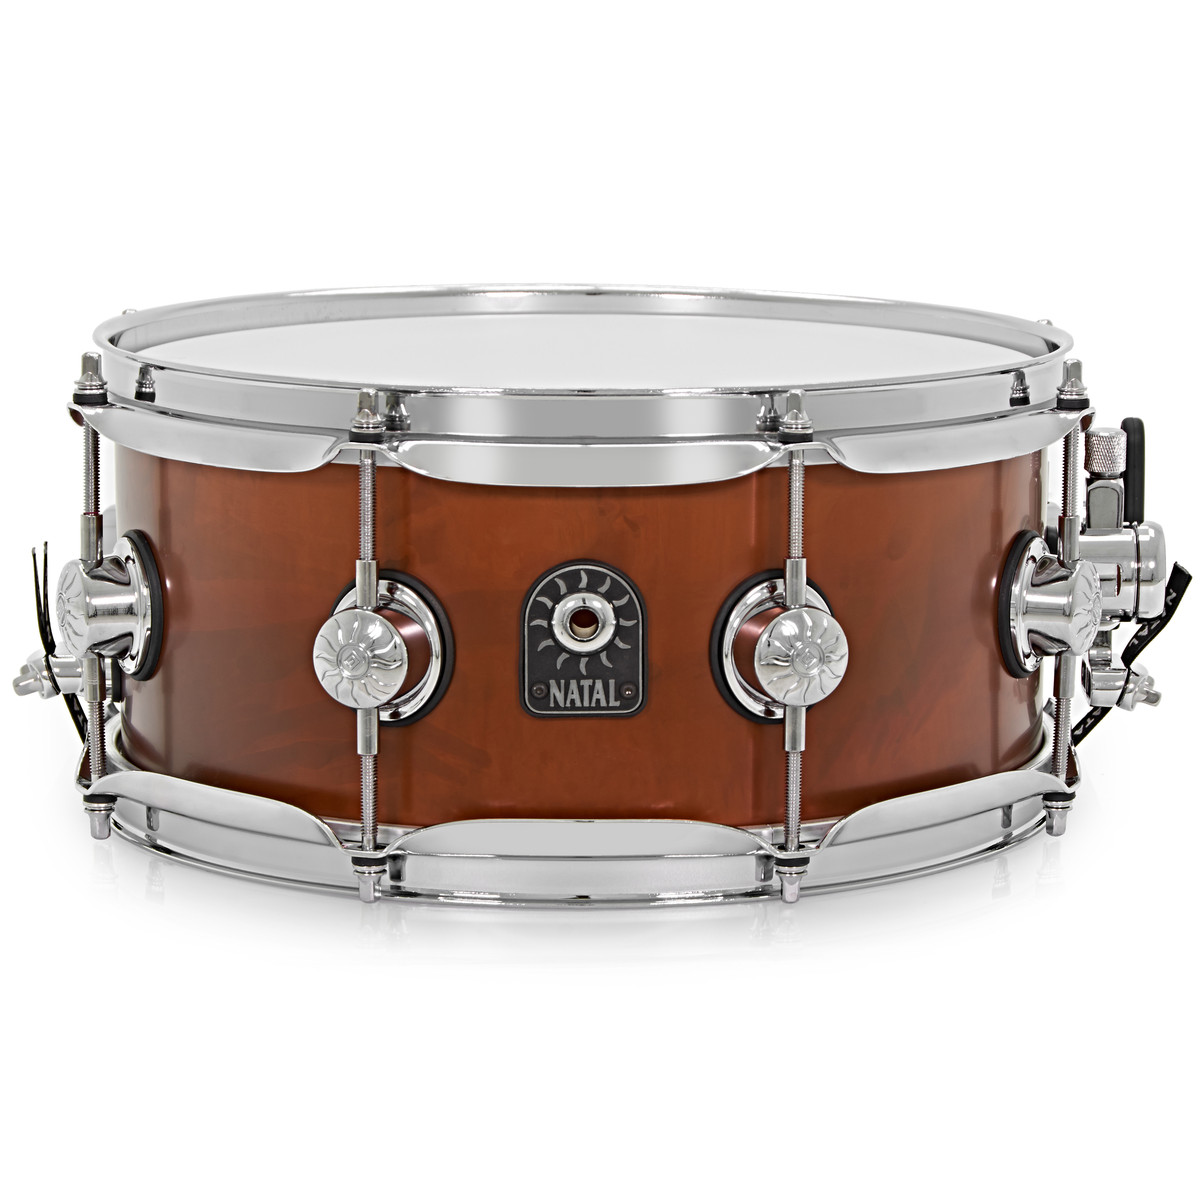 disc natal 12 39 39 x 5 5 39 39 limited edition snare drum at gear4music. Black Bedroom Furniture Sets. Home Design Ideas